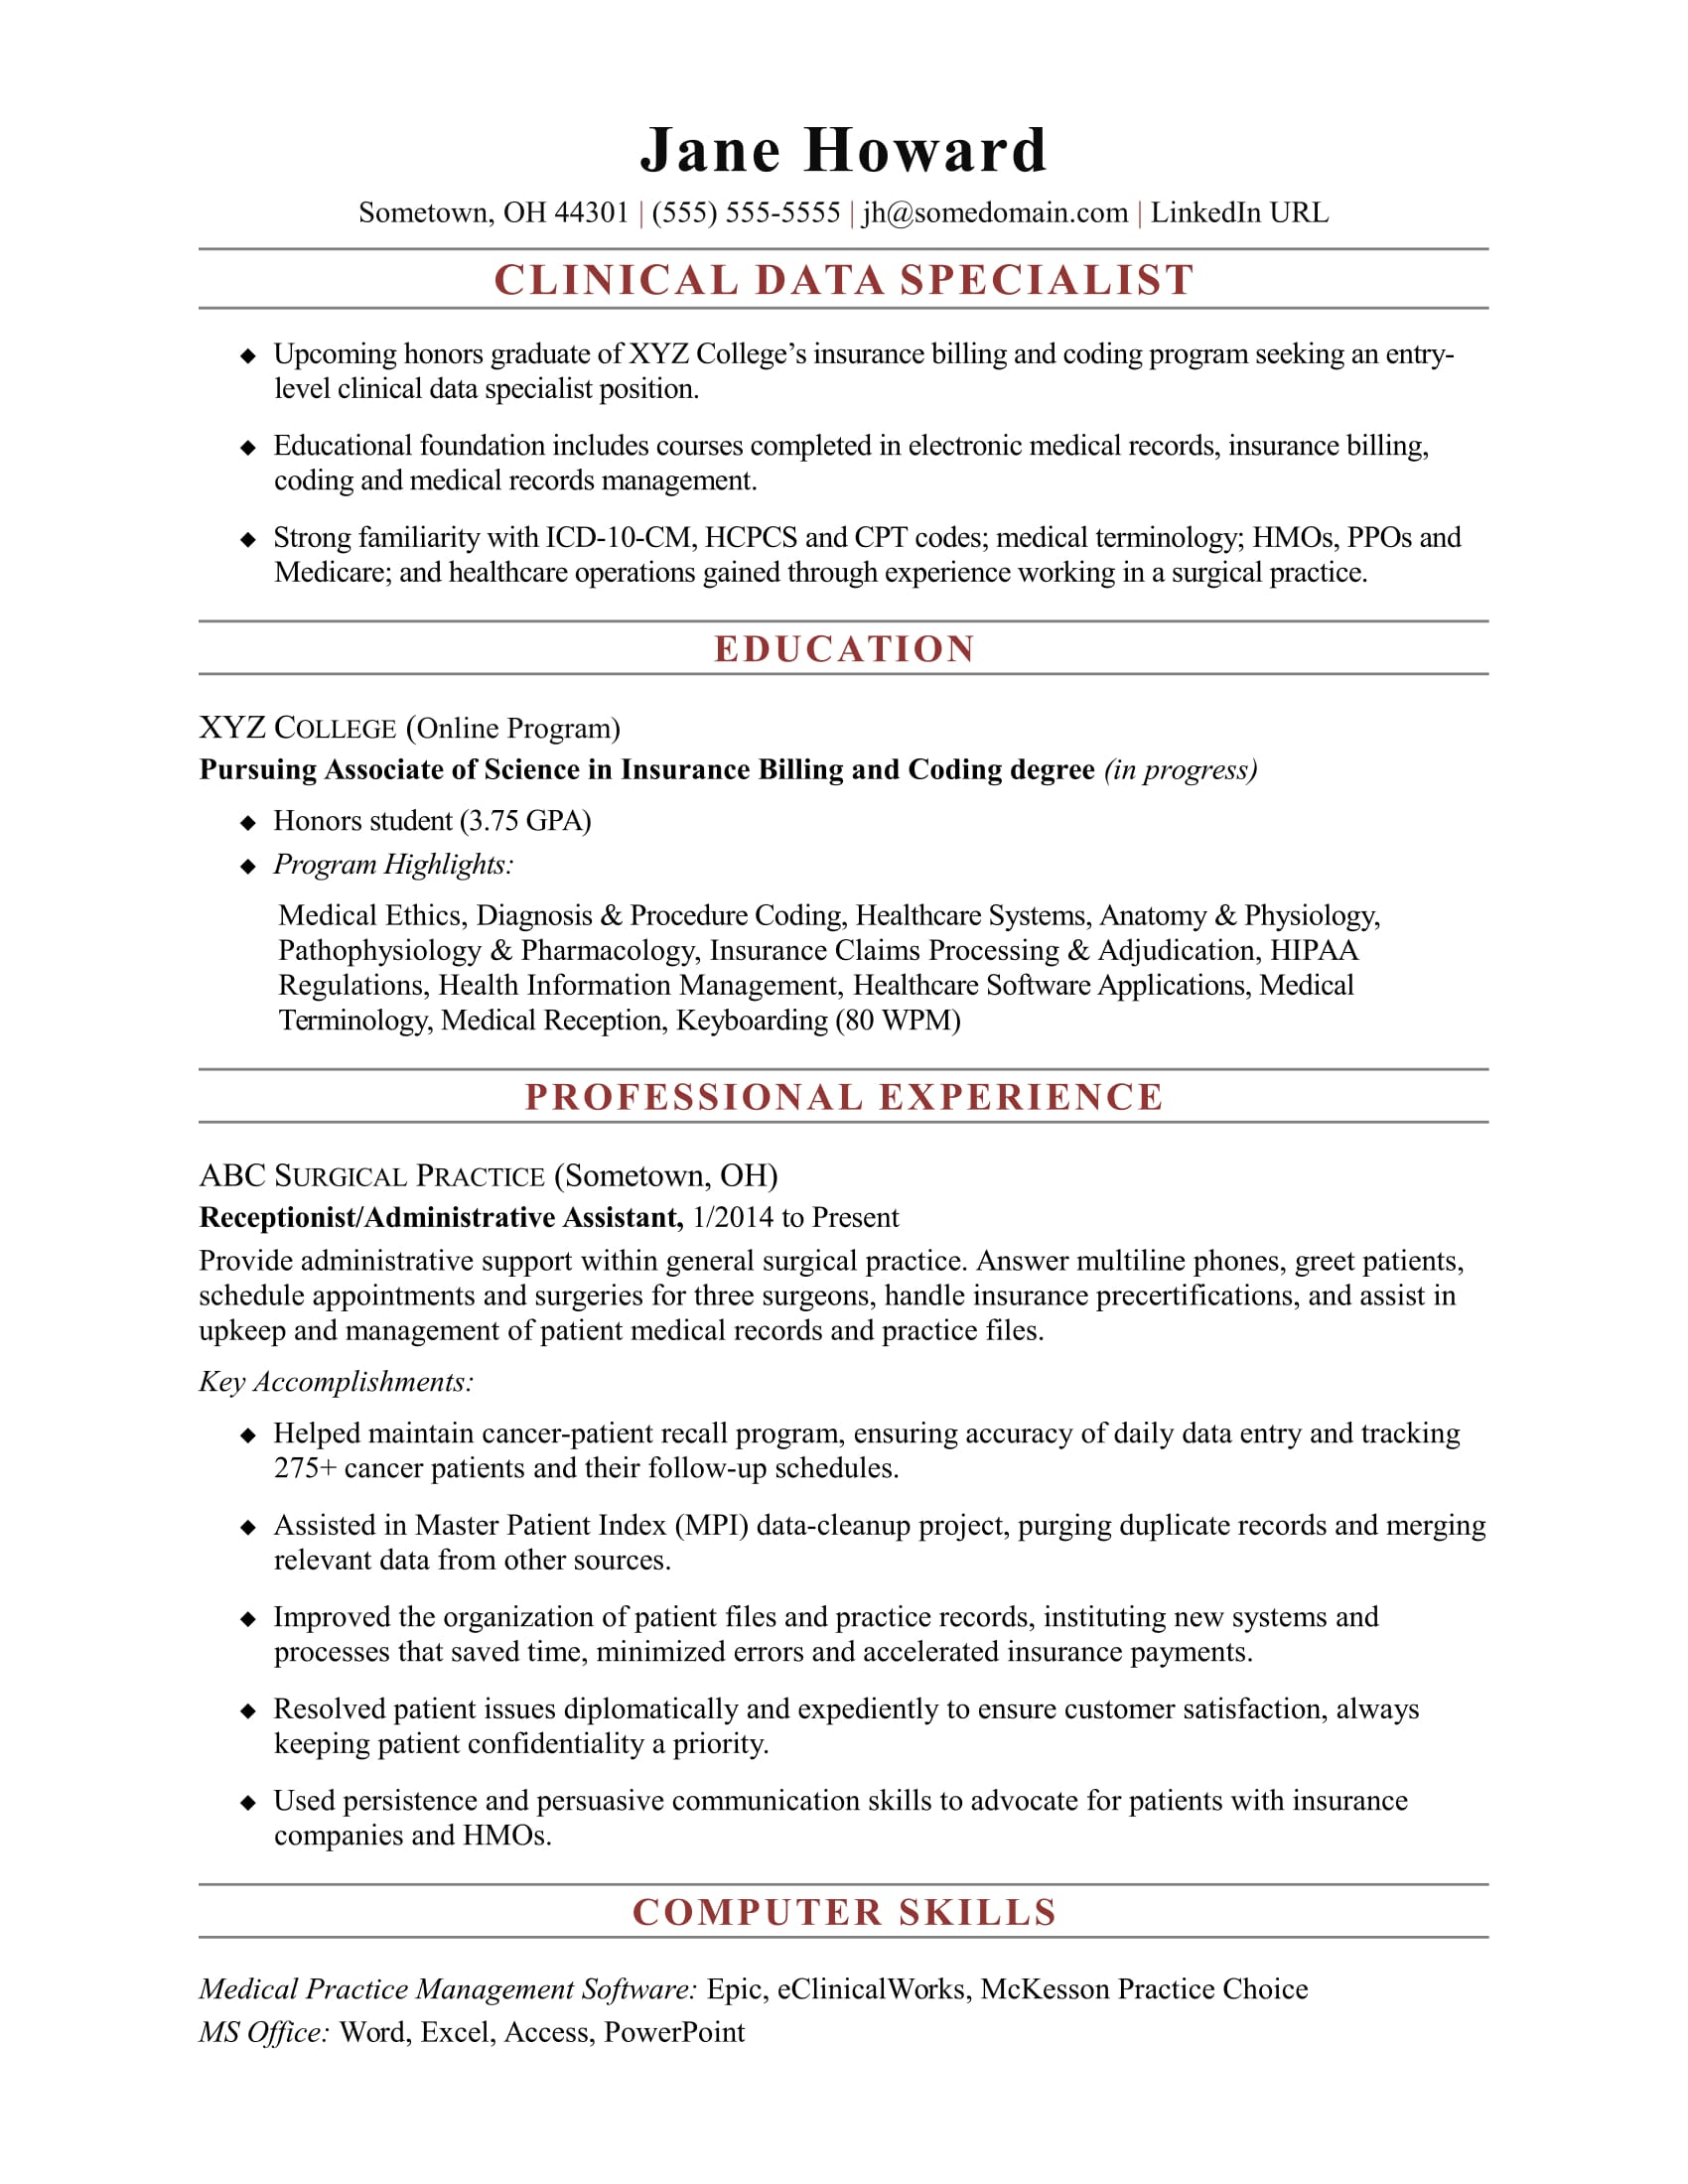 sample resume for an entry level clinical data specialist - Medical Records Resume